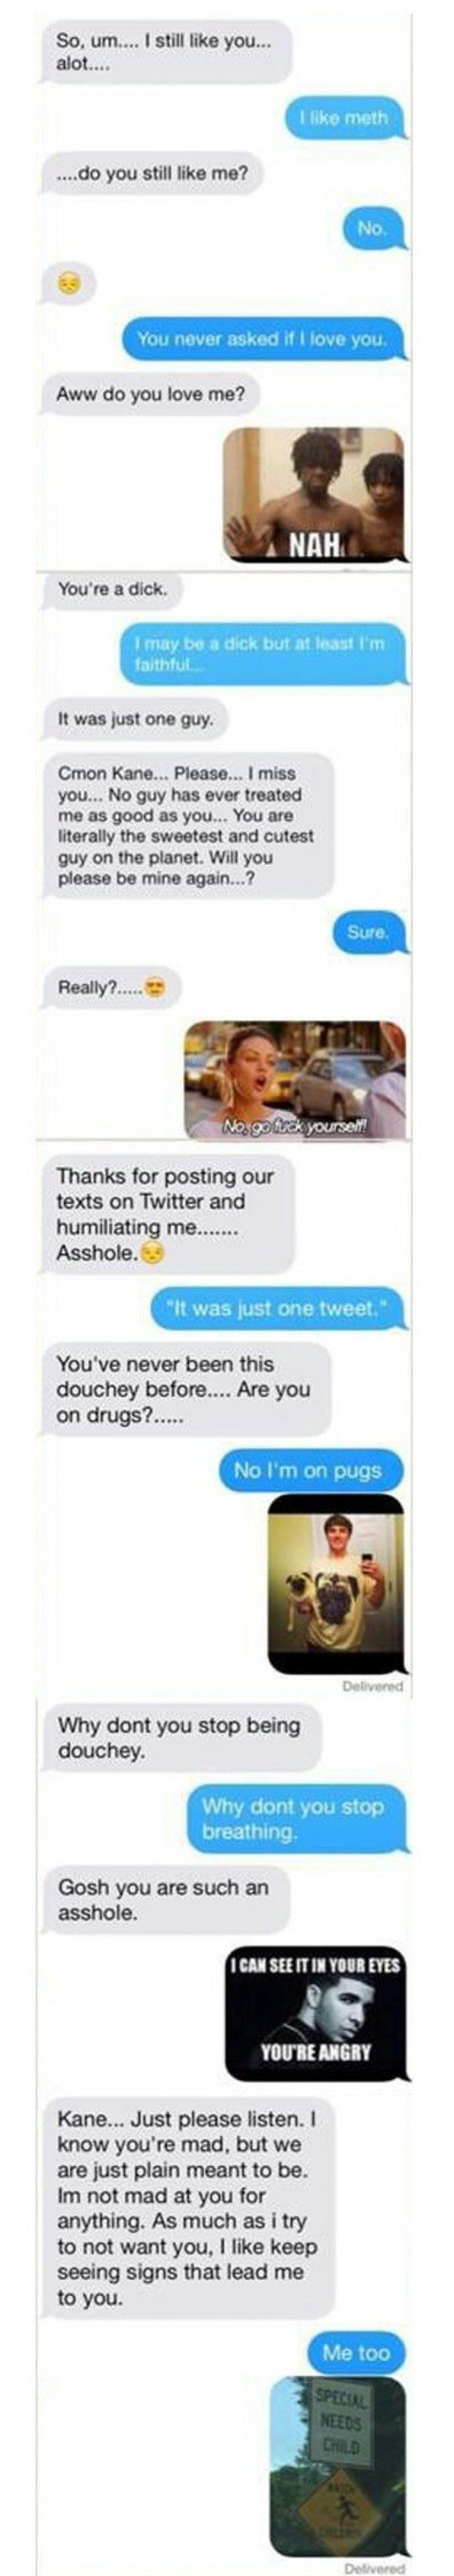 This Guy Handles Texting His Cheating Ex-Girlfriend Like A Champion.